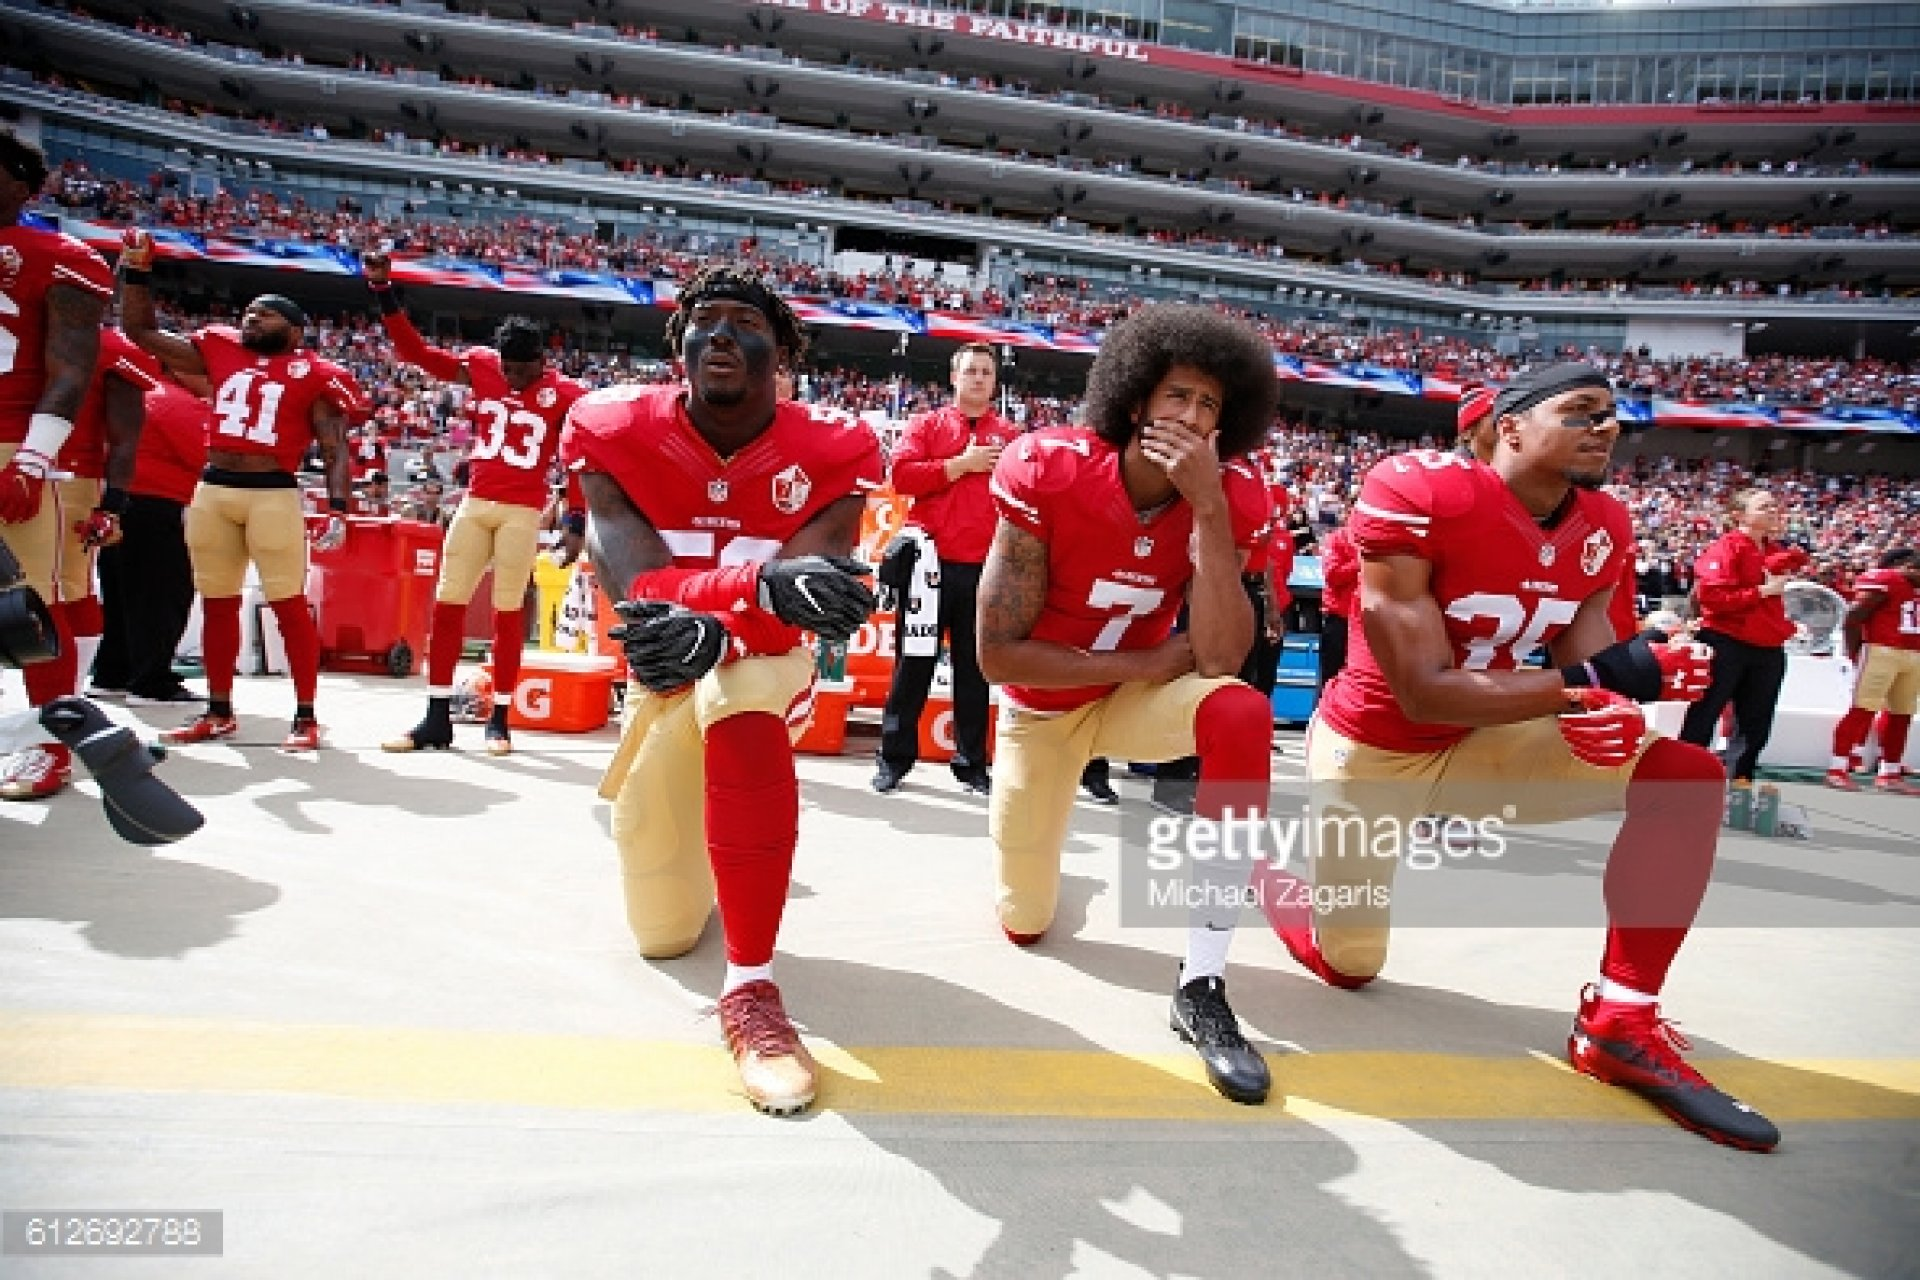 SANTA CLARA, CA - OCTOBER 2: Antoine Bethea #41 and Rashard Robinson #33  of the San Francisco 49ers raise their first during the anthem as Eli Harold #58 while teammates Colin Kaepernick #7 and Eric Reid #35 take a knee, prior to the game against the Dallas Cowboys at Levi Stadium on October 2, 2016 in Santa Clara, California. The Cowboys defeated the 49ers 24-17. (Photo by Michael Zagaris/San Francisco 49ers/Getty Images)  *** Local Caption *** Antoine Bethea;Rashard Robinson;Eli Harold;Colin Kaepernick;Eric Reid